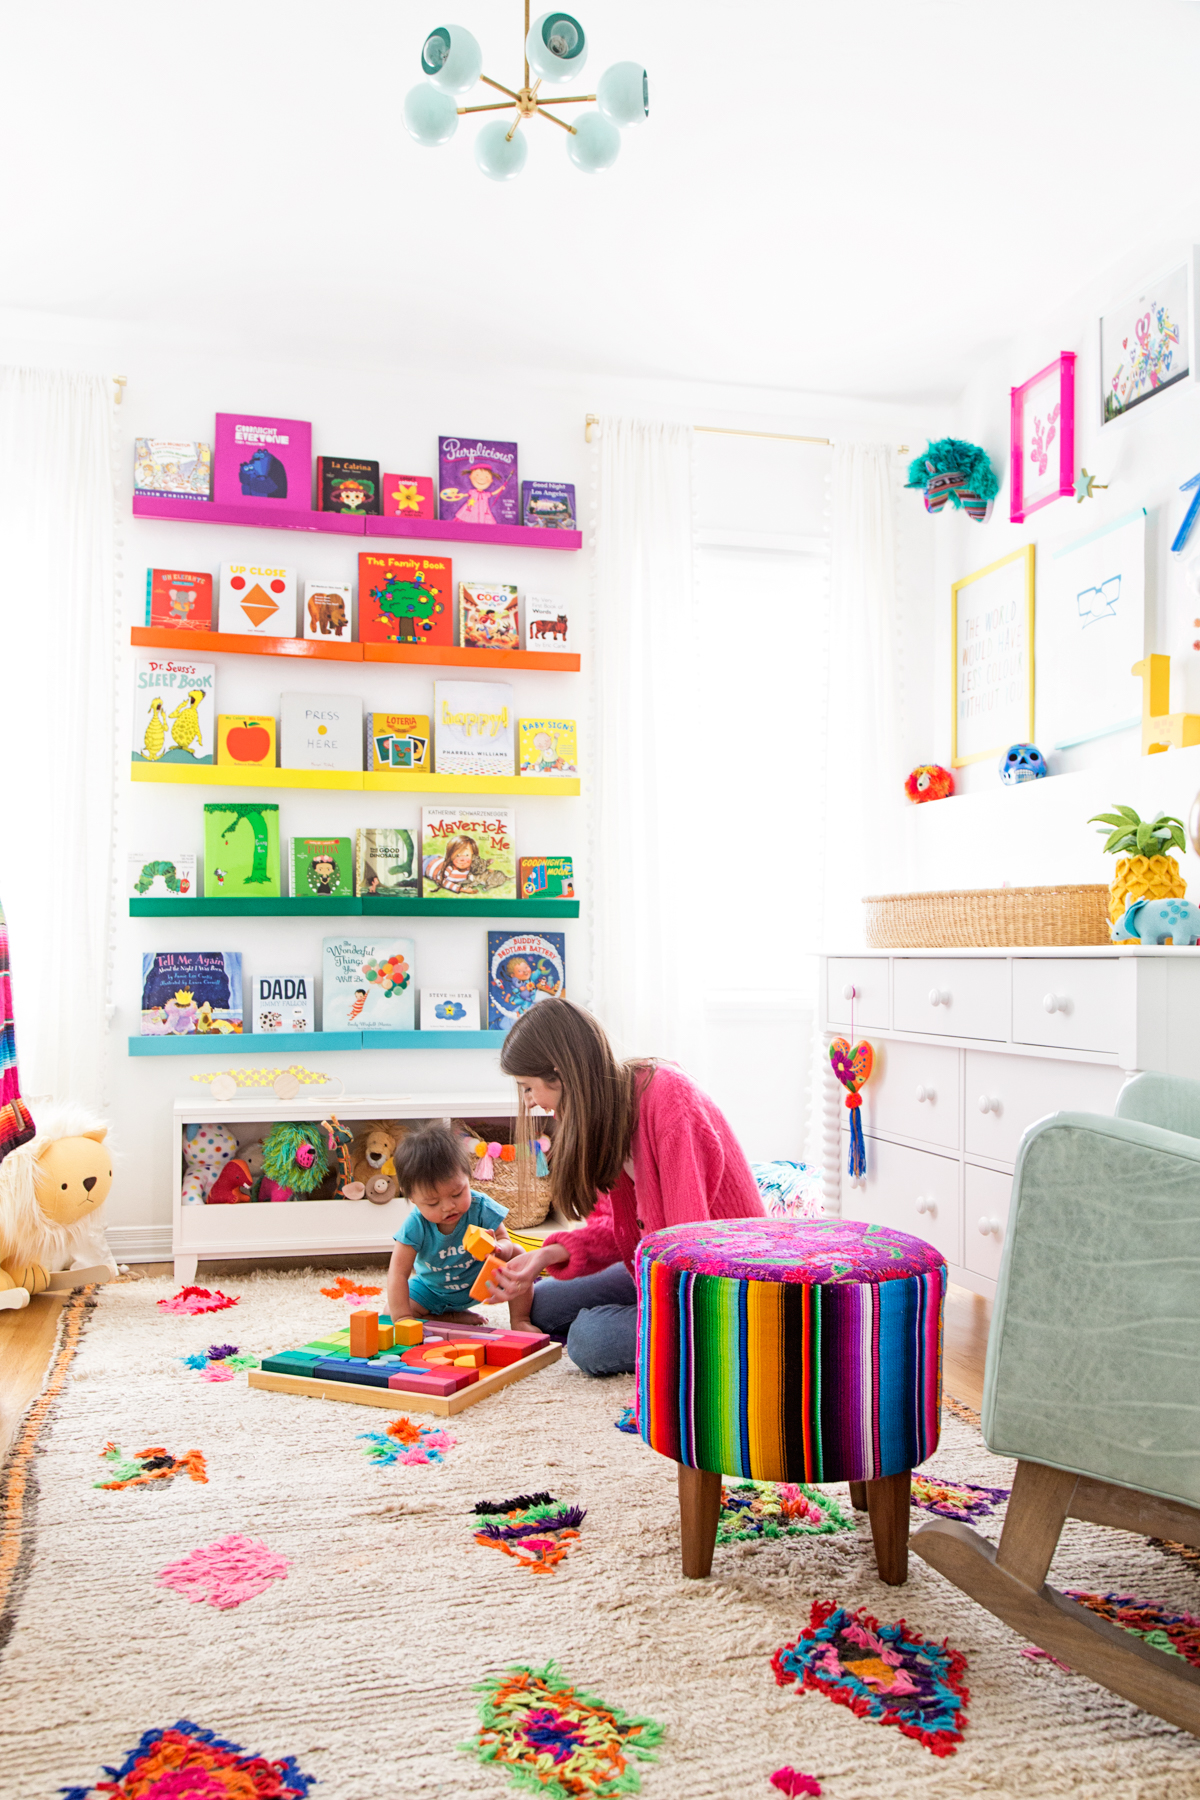 Items To Decorate Living Room: How To Decorate A Kids Room!